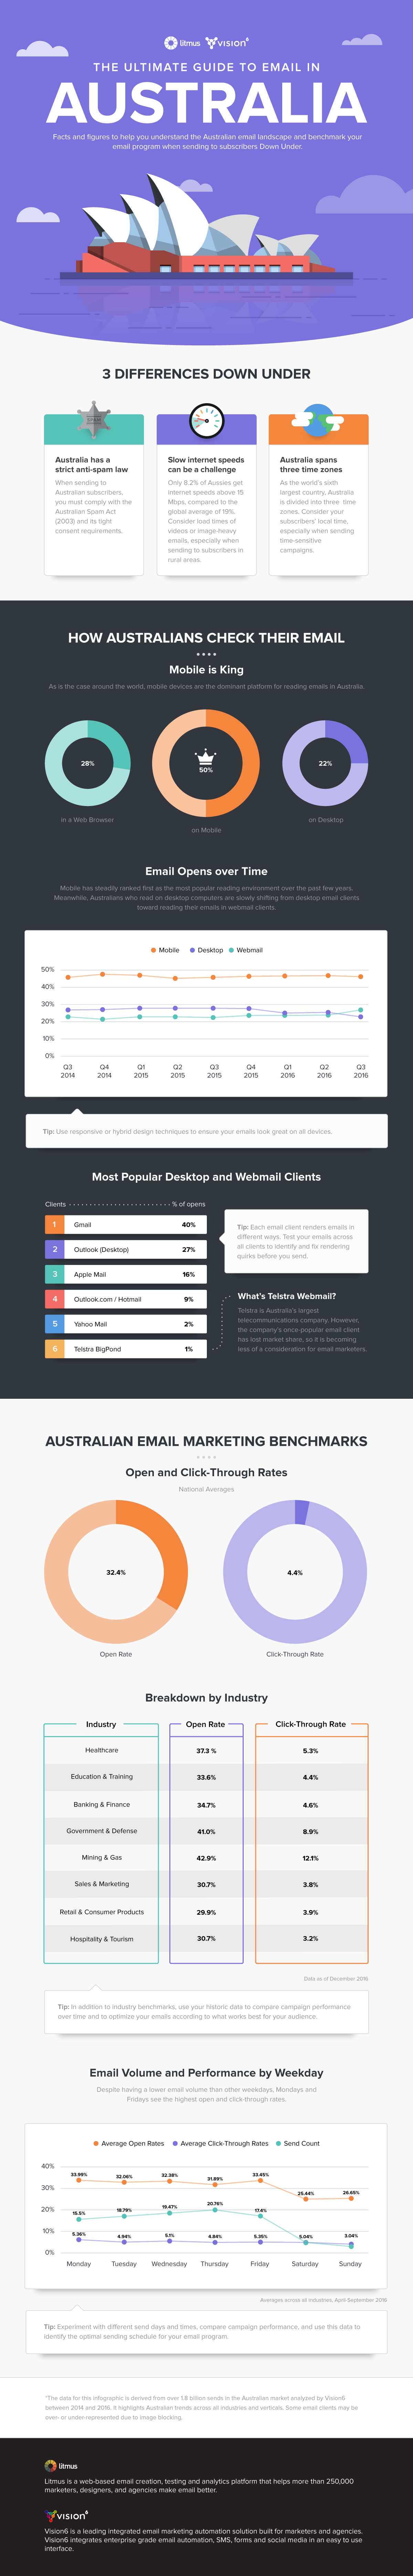 The-Ultimate-Guide-to-Email-in-Australia